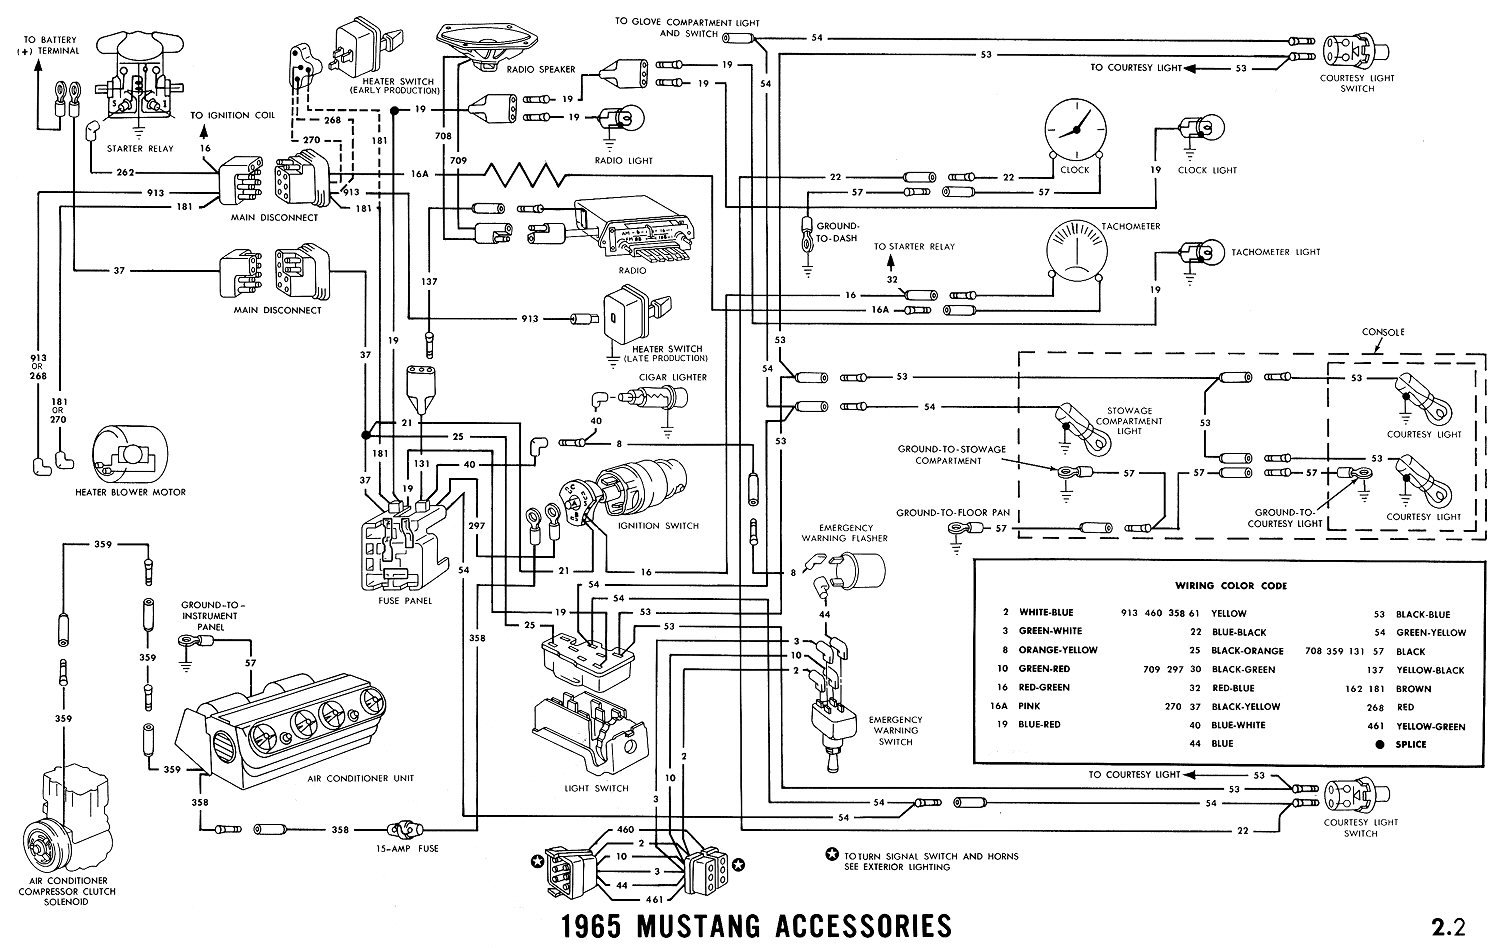 ford mustang stereo wiring diagram kitchenaid trash compactor parts 1965 radio connections forum